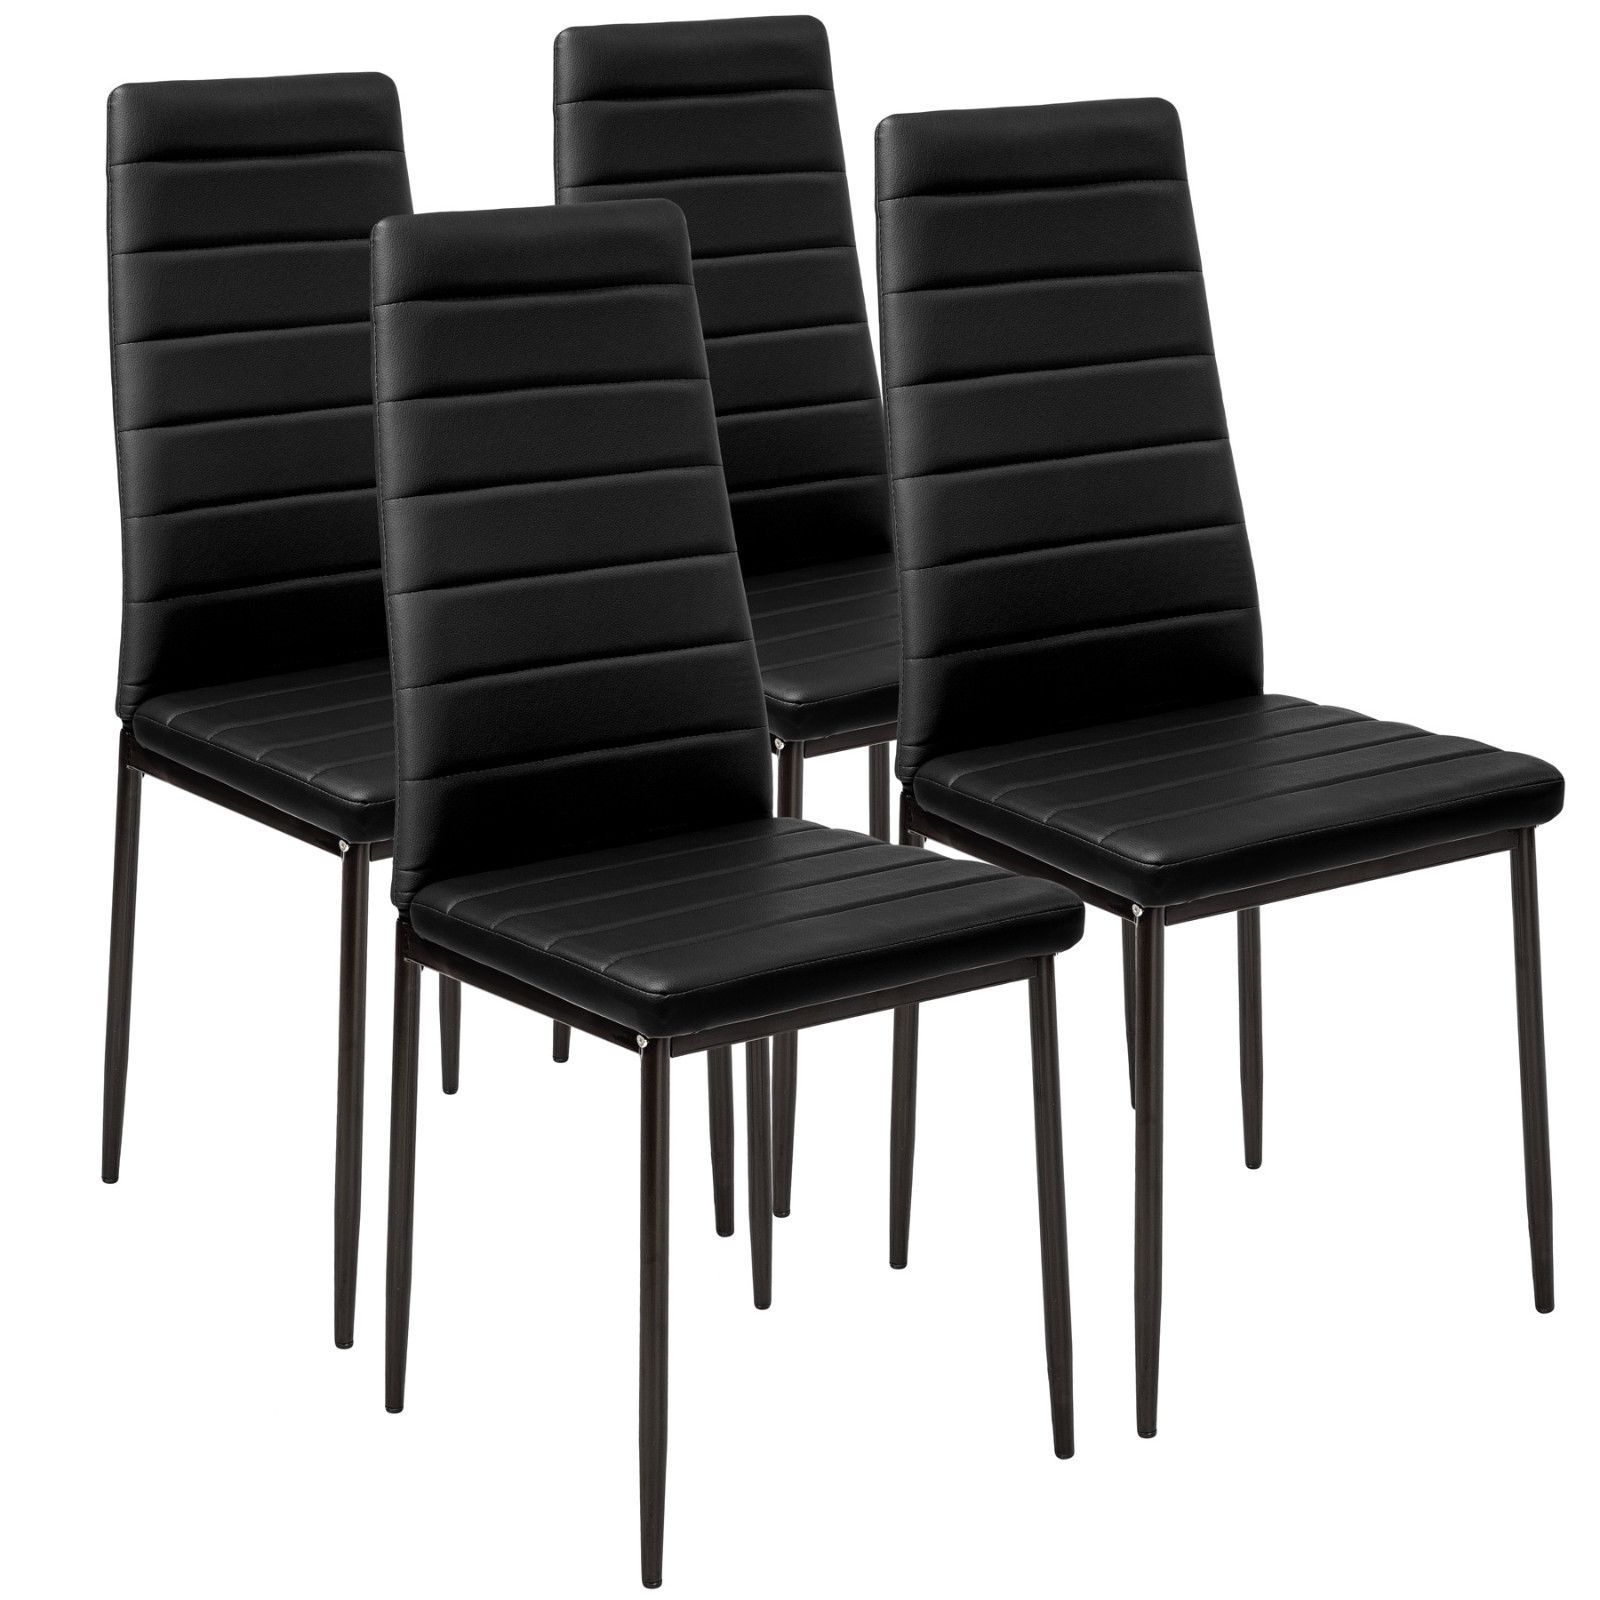 Panana 4 X Faux Leather High Back /white Dining Chairs Set Black Metal Leg Padded Seat Kitchen 6pcs Black Are Not Available